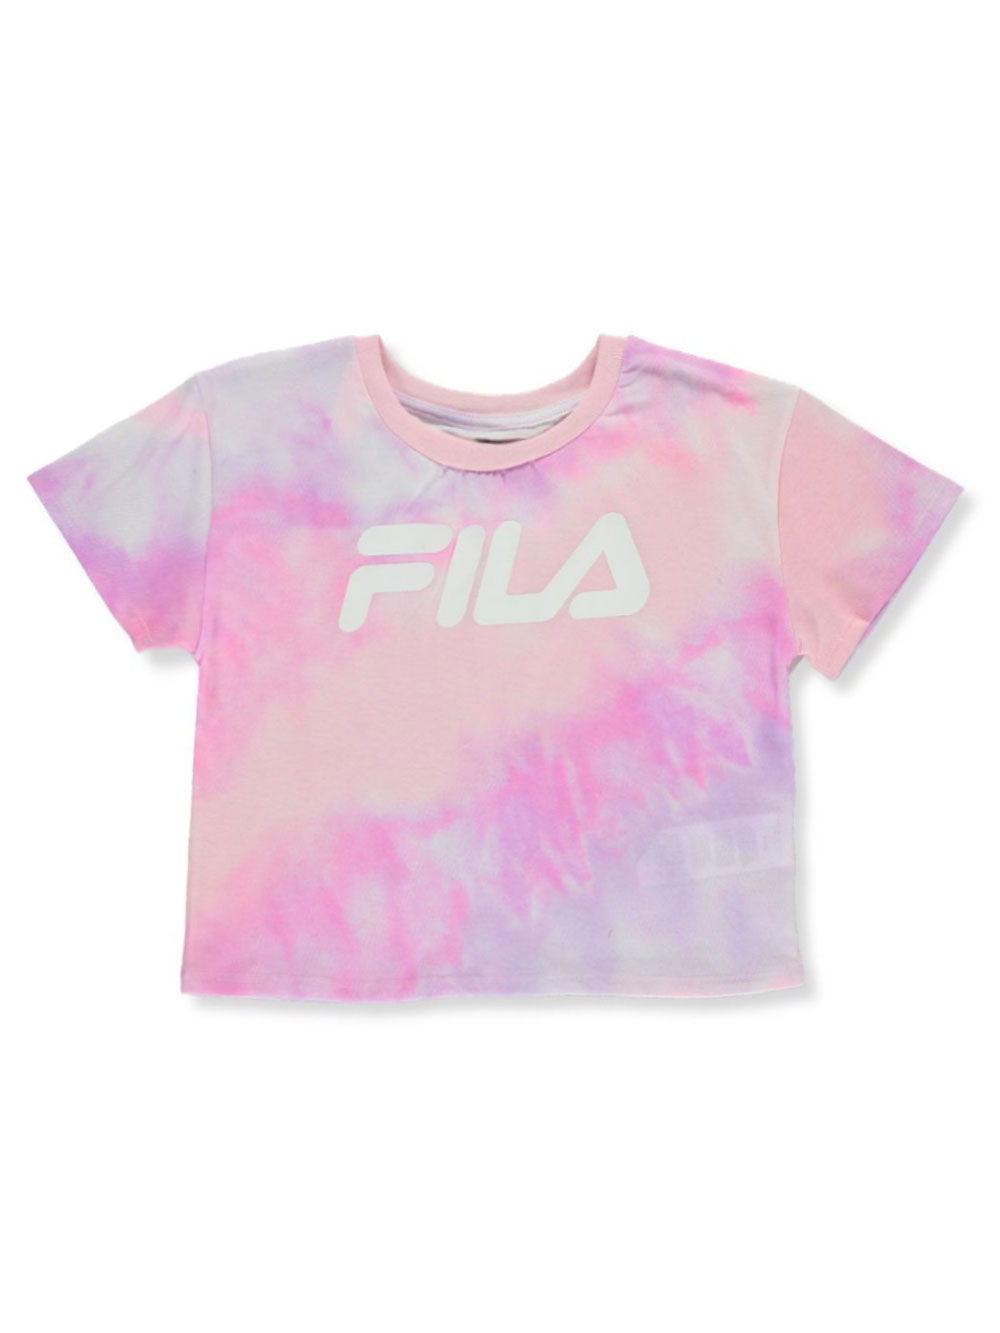 Girls' Tie-Dye Box T-Shirt